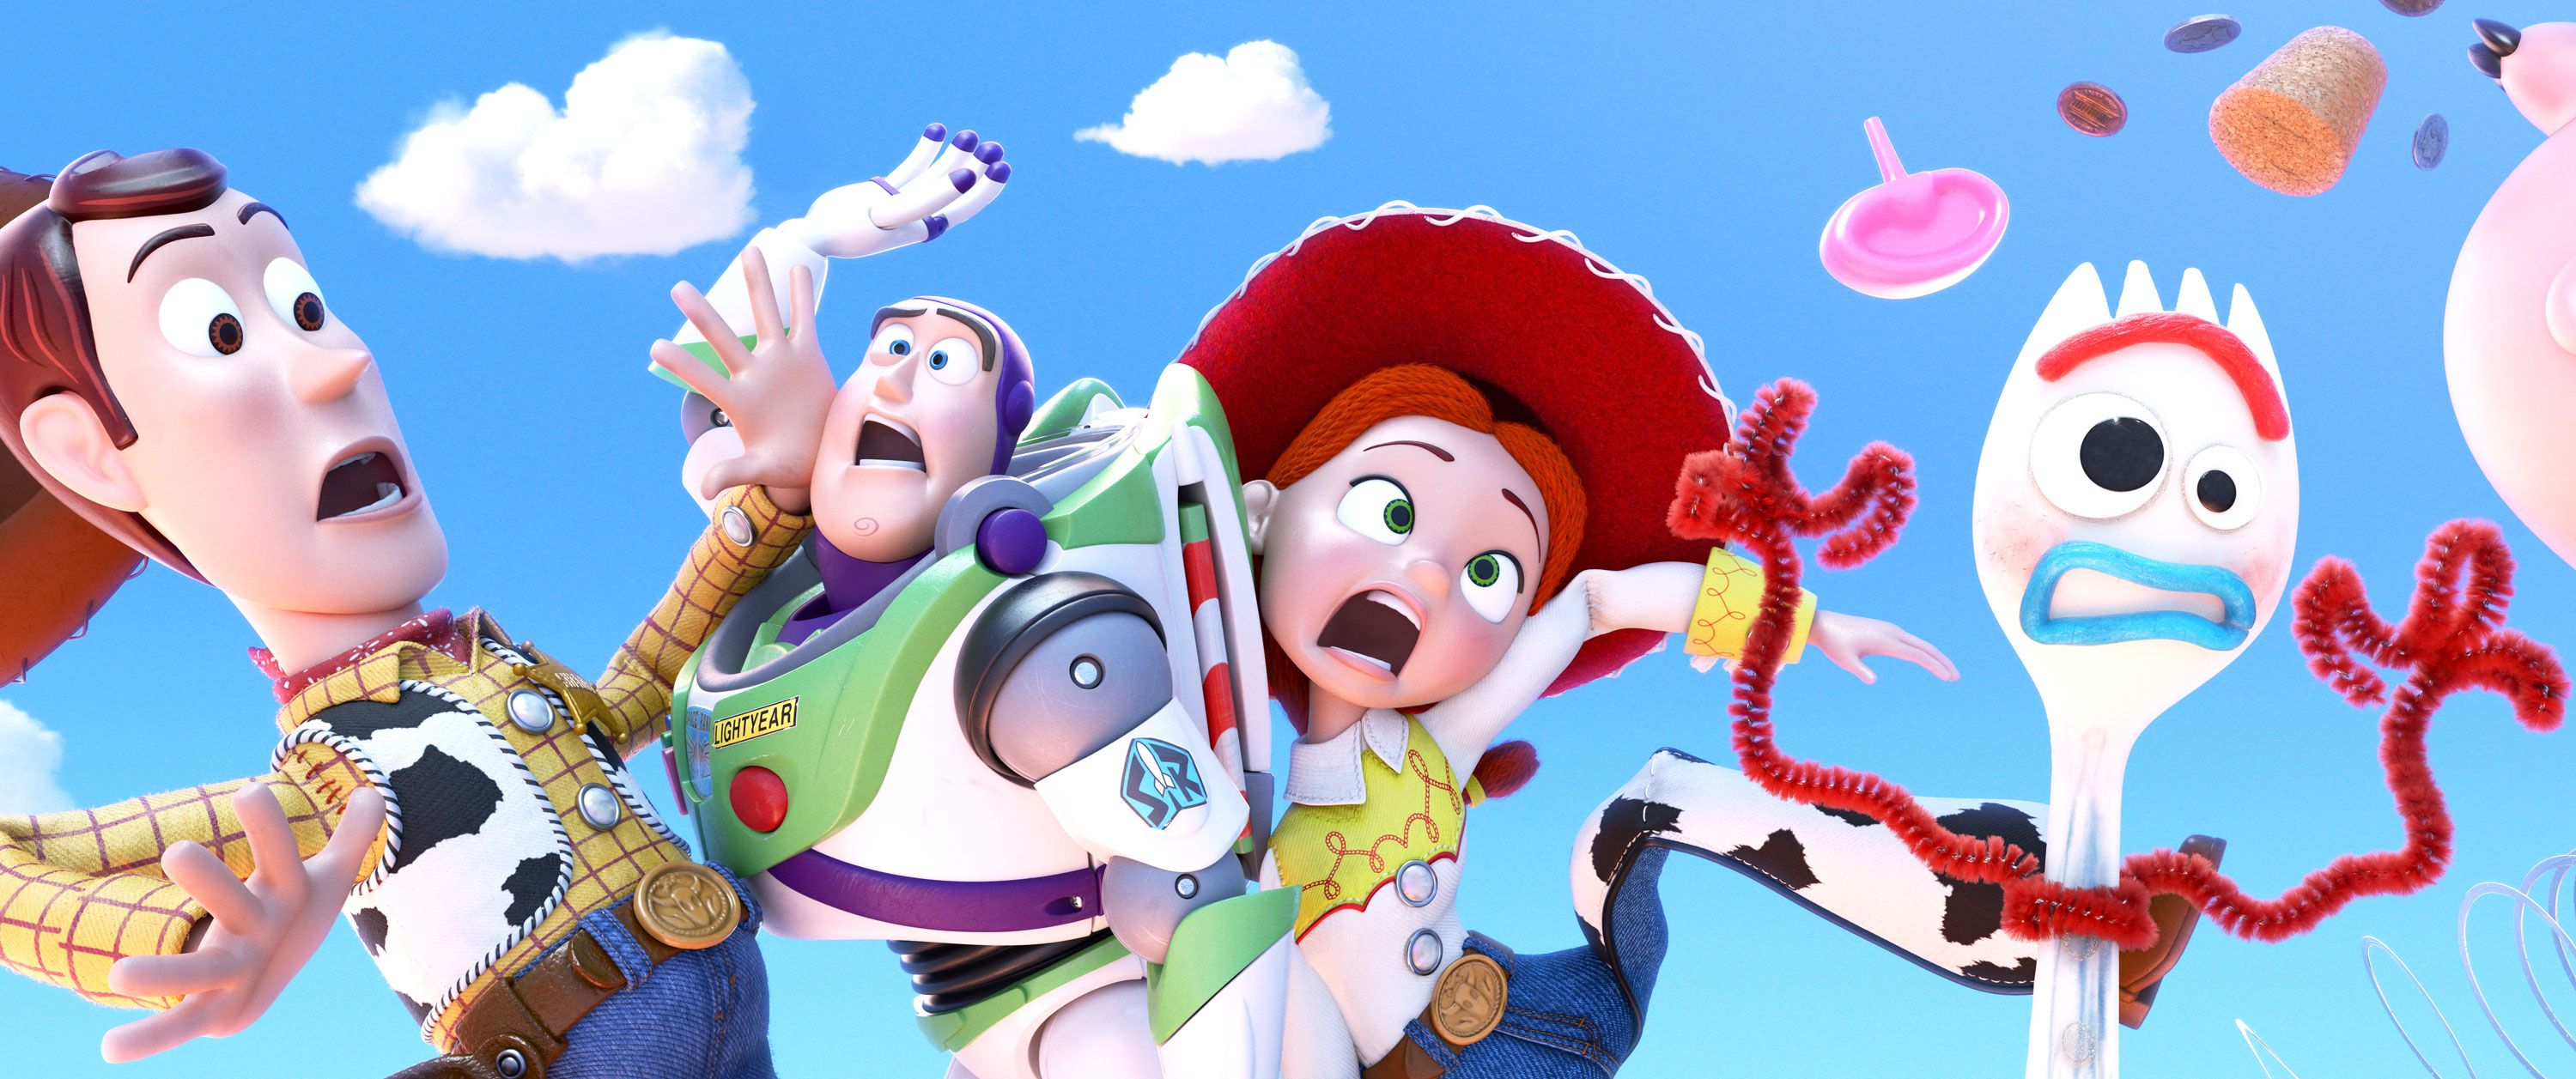 Toy Story 4 trailer, release date, plot, cast